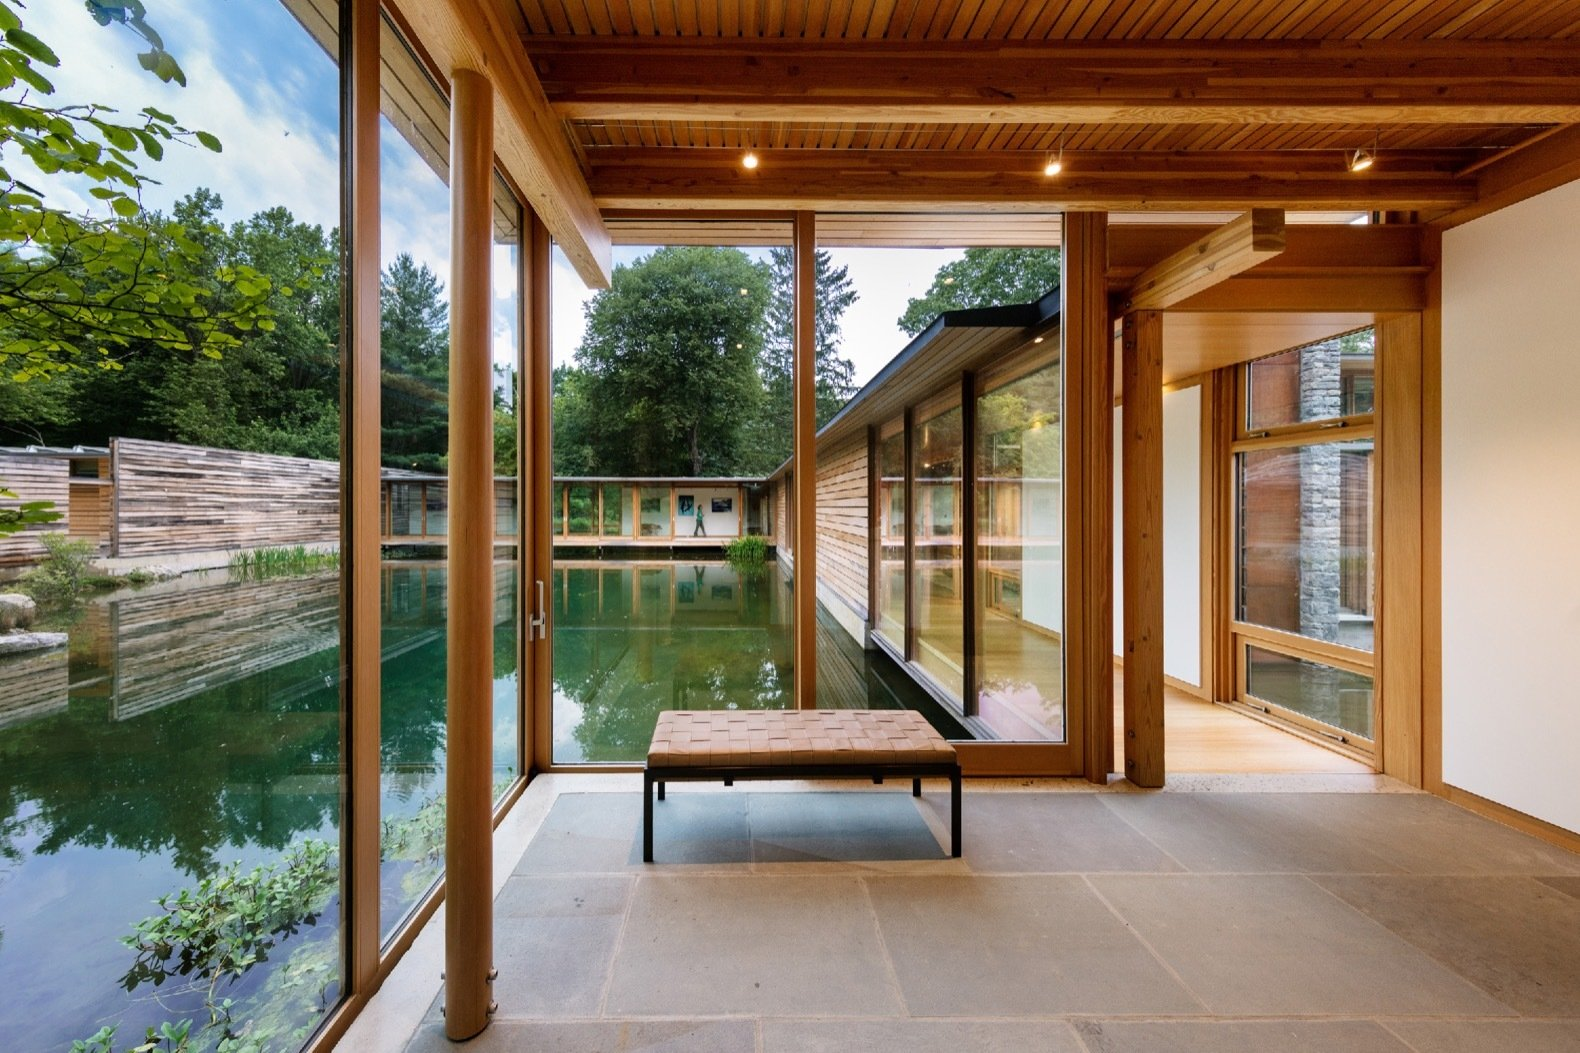 Outdoor, Woodland, Trees, Tile, Grass, Small, and Large The entry foyer, perched on the pond's west bank, opens to a long glazed walkway elevated above the water that leads to the main living spaces and bedrooms beyond.  Outdoor Trees Woodland Tile Small Photos from This Striking Net-Zero Home Wraps Around a Serene Pond